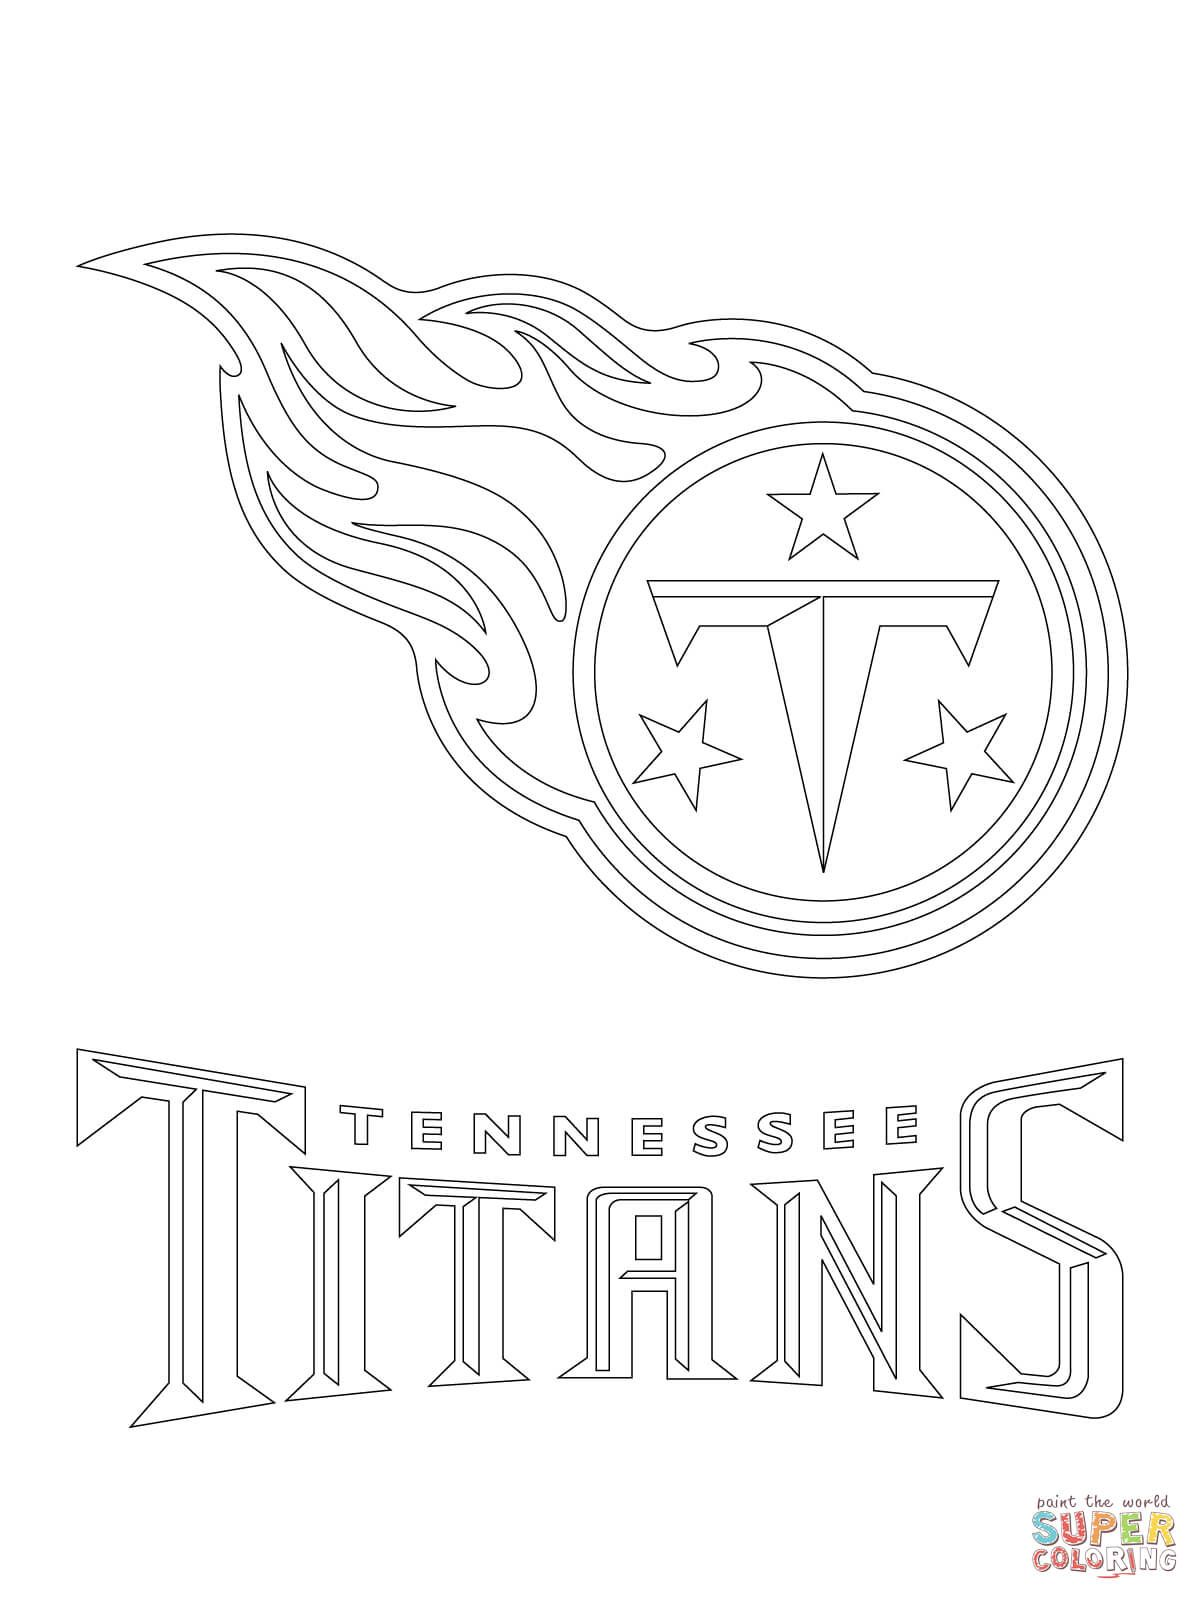 Tennessee Titans Logo Coloring Page Free Printable Coloring Pages Football Coloring Pages Coloring Pages Coloring Pages Inspirational